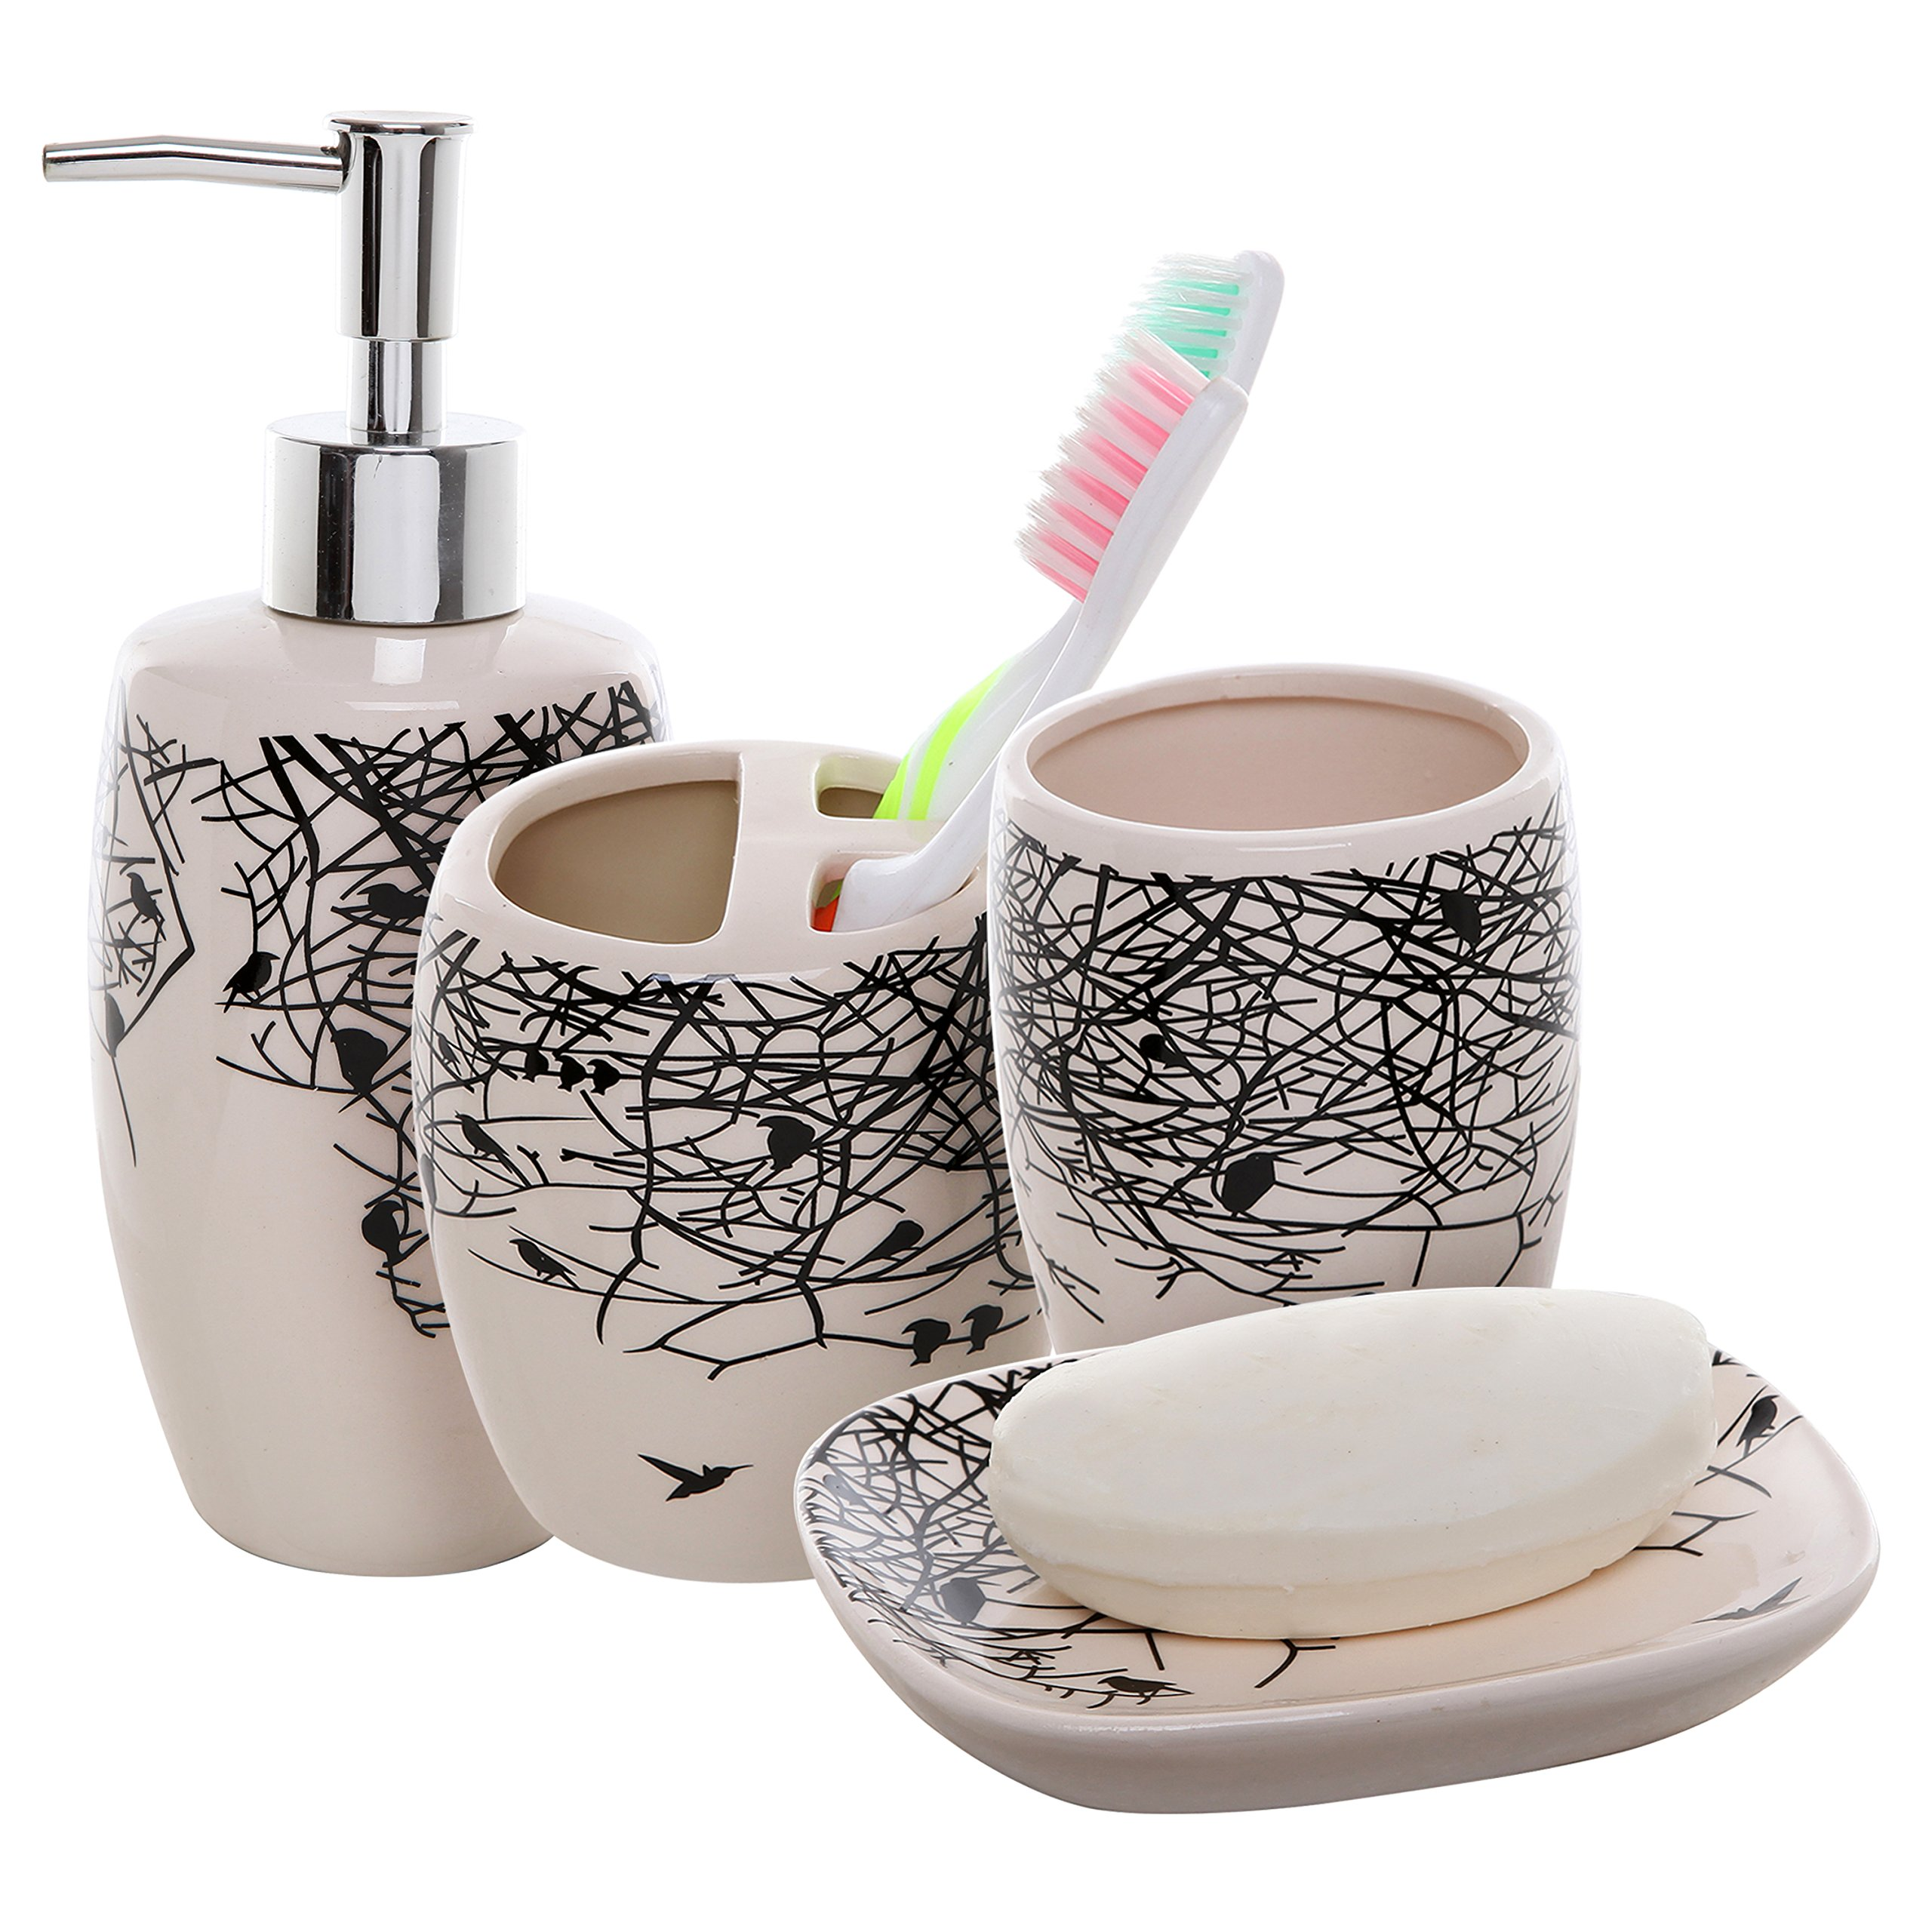 4 piece beige ceramic bathroom accessories set for Ceramic bath accessories